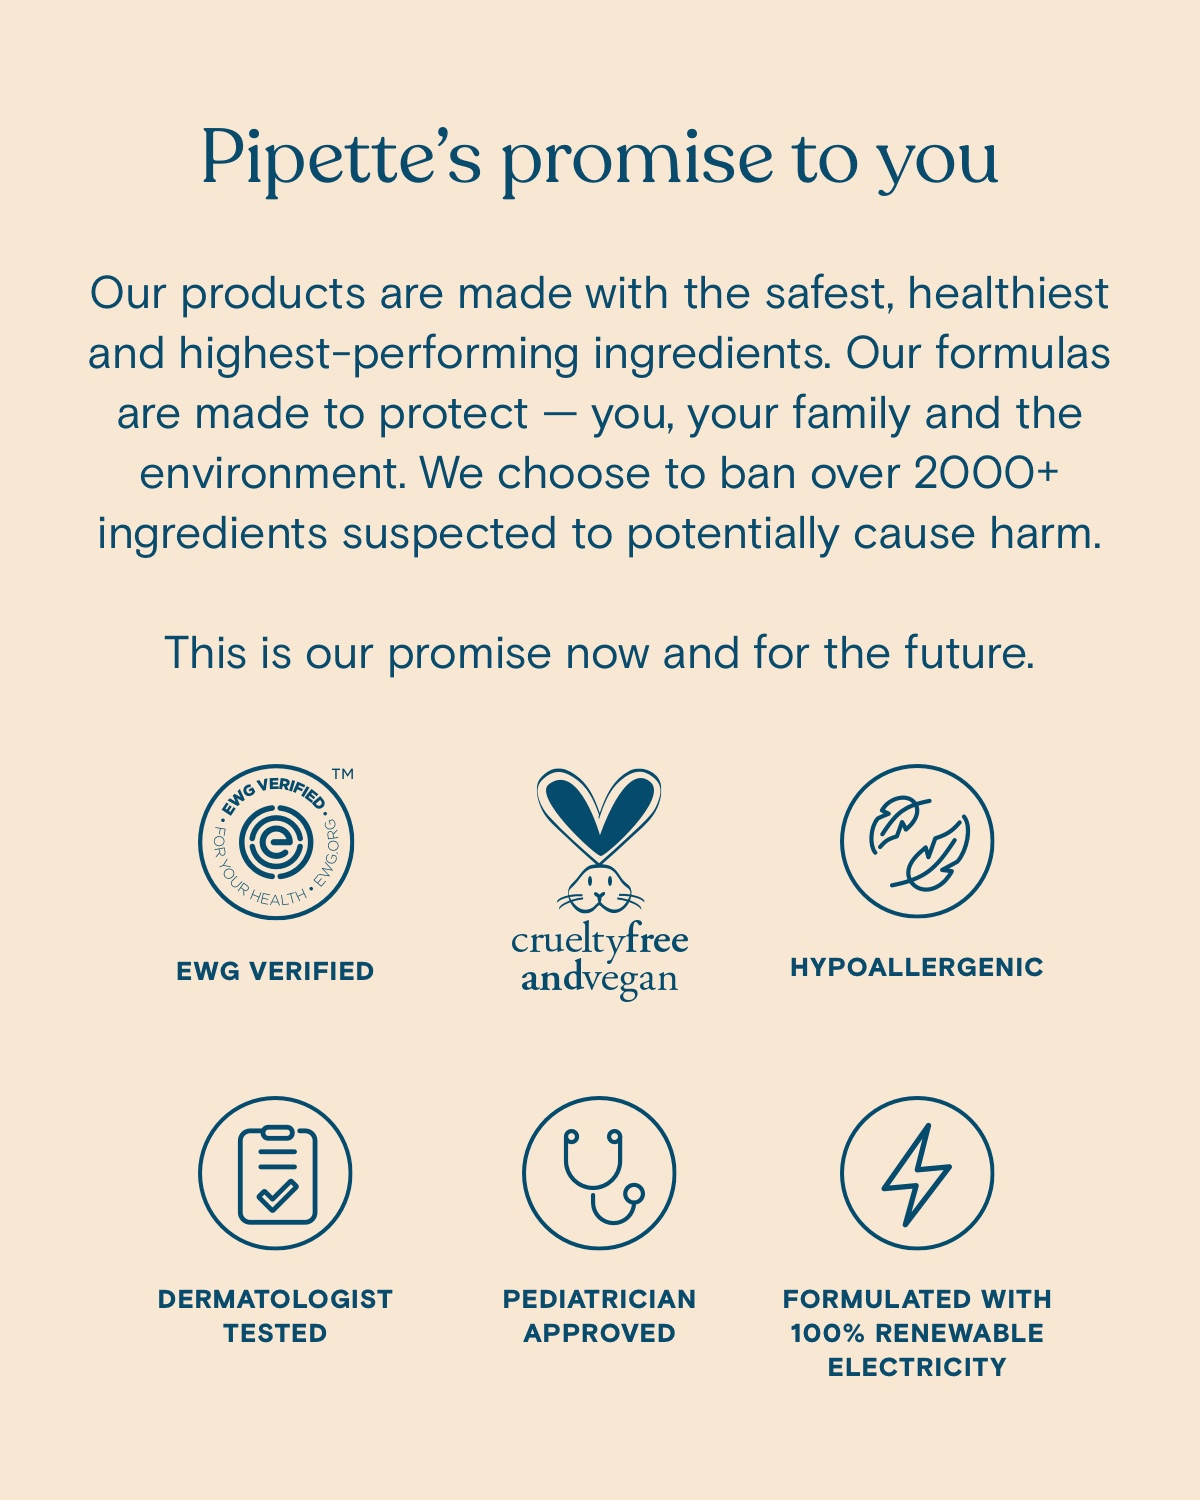 Pipette's promise to you. Our products are made with the safest, healthiest and highest-performing ingredients. Our formulas are made to protect - you, your family and the environment. We choose to ban over 2000+ ingredients suspected to potentially cause harm. This is our promise now and for the future.